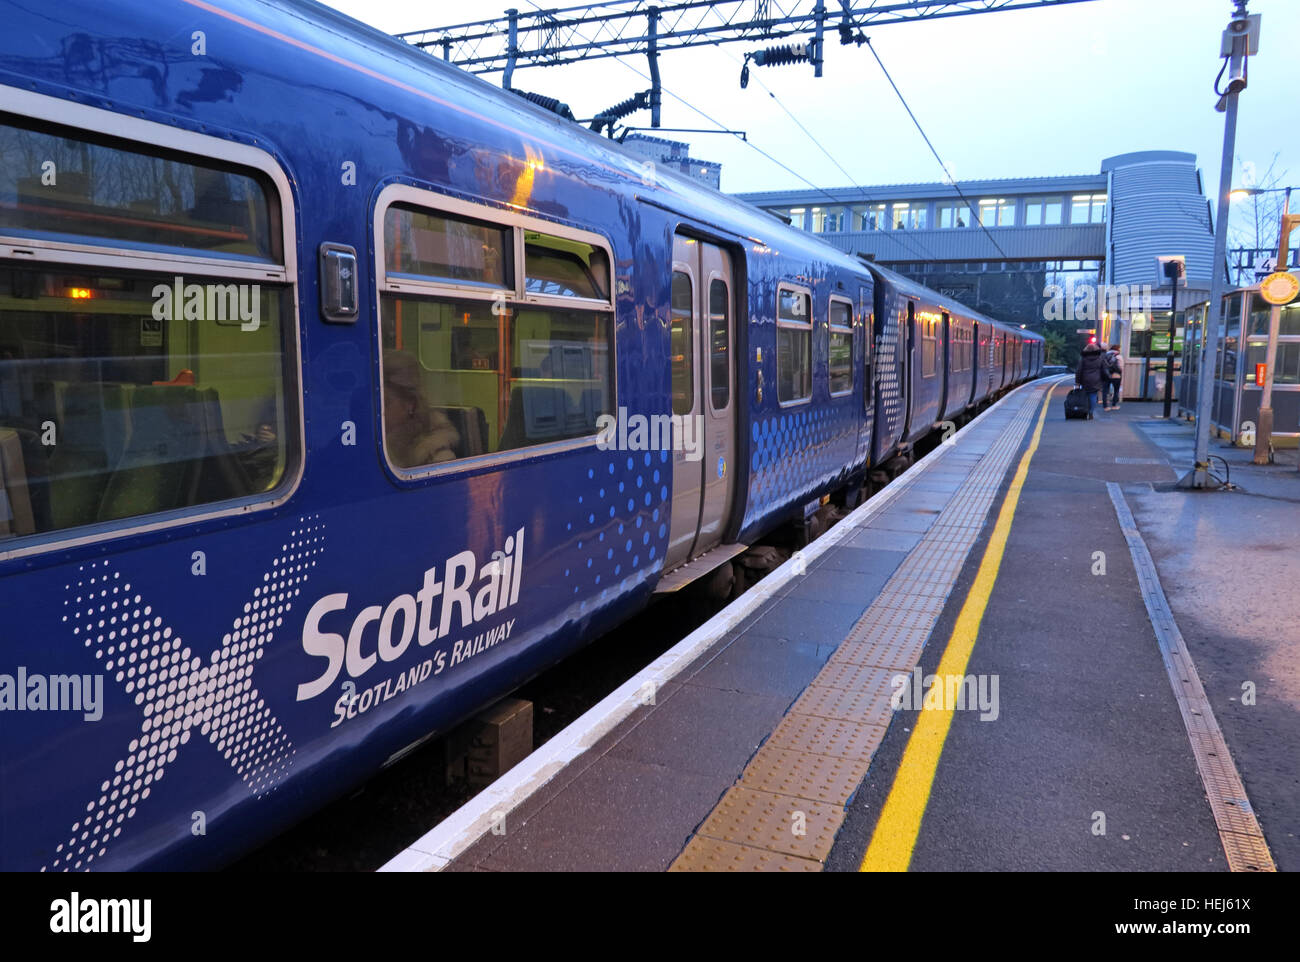 SNP,Hollyrood,back,into,state,ownership,after,poor,service,renationalise,nationalised,TOC,national,late,overcrowded,trains,fines,fine,penalty,penalties,transport,travel,infrastructure,slow,packed,Dutch,operator,devolved,powers,Scottish National Party,train operating company,Scotrail Franchise,GoTonySmith,@HotpixUK,Tony,Smith,UK,GB,Great,Britain,United,Kingdom,Scots,Scottish,British,Scotland,Glasgow,Greater,problem,with,problem with,issue with,City,Centre,cities,Urban,Urbanist,town,infrastructure,transport,tour,tourism,tourists,urban,attraction,attractions,livery,EMU,Motherwell,dusk,evening,morning,delay,delays,delayed.late,later,Buy Pictures of,Buy Images Of,Images of,Stock Images,Tony Smith,United Kingdom,Great Britain,Greater Glasgow,British Isles,Glasgow City Centre,City Centre,Scotrail problems,Scotrail delays,Scot Rail problems,Scot rail delays